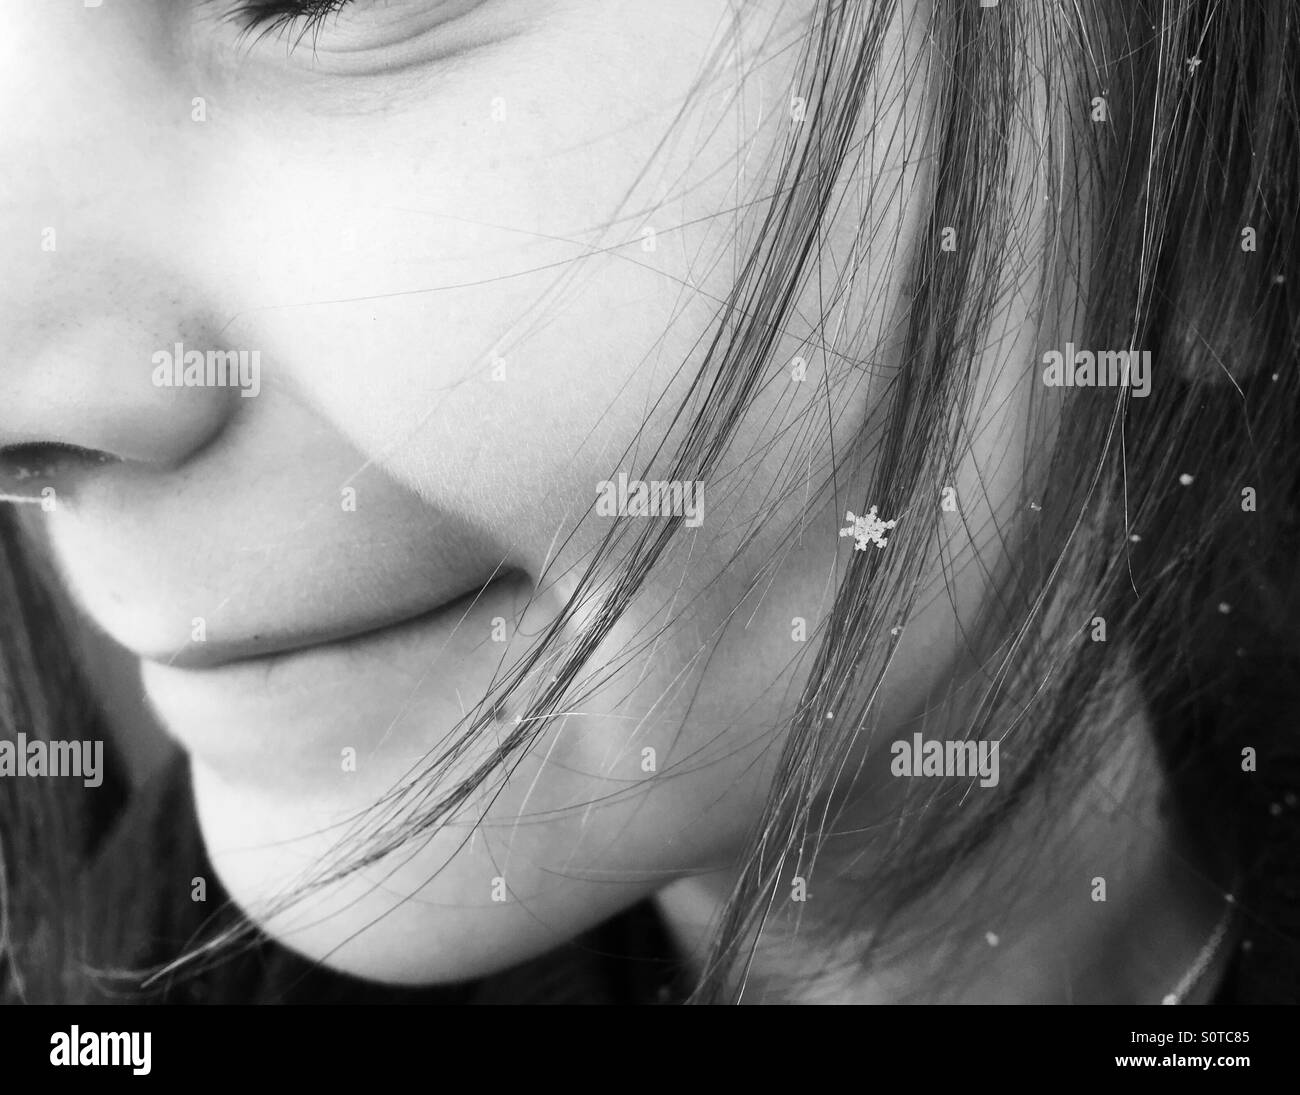 A perfect little snowflake in a young girl's long hair. - Stock Image